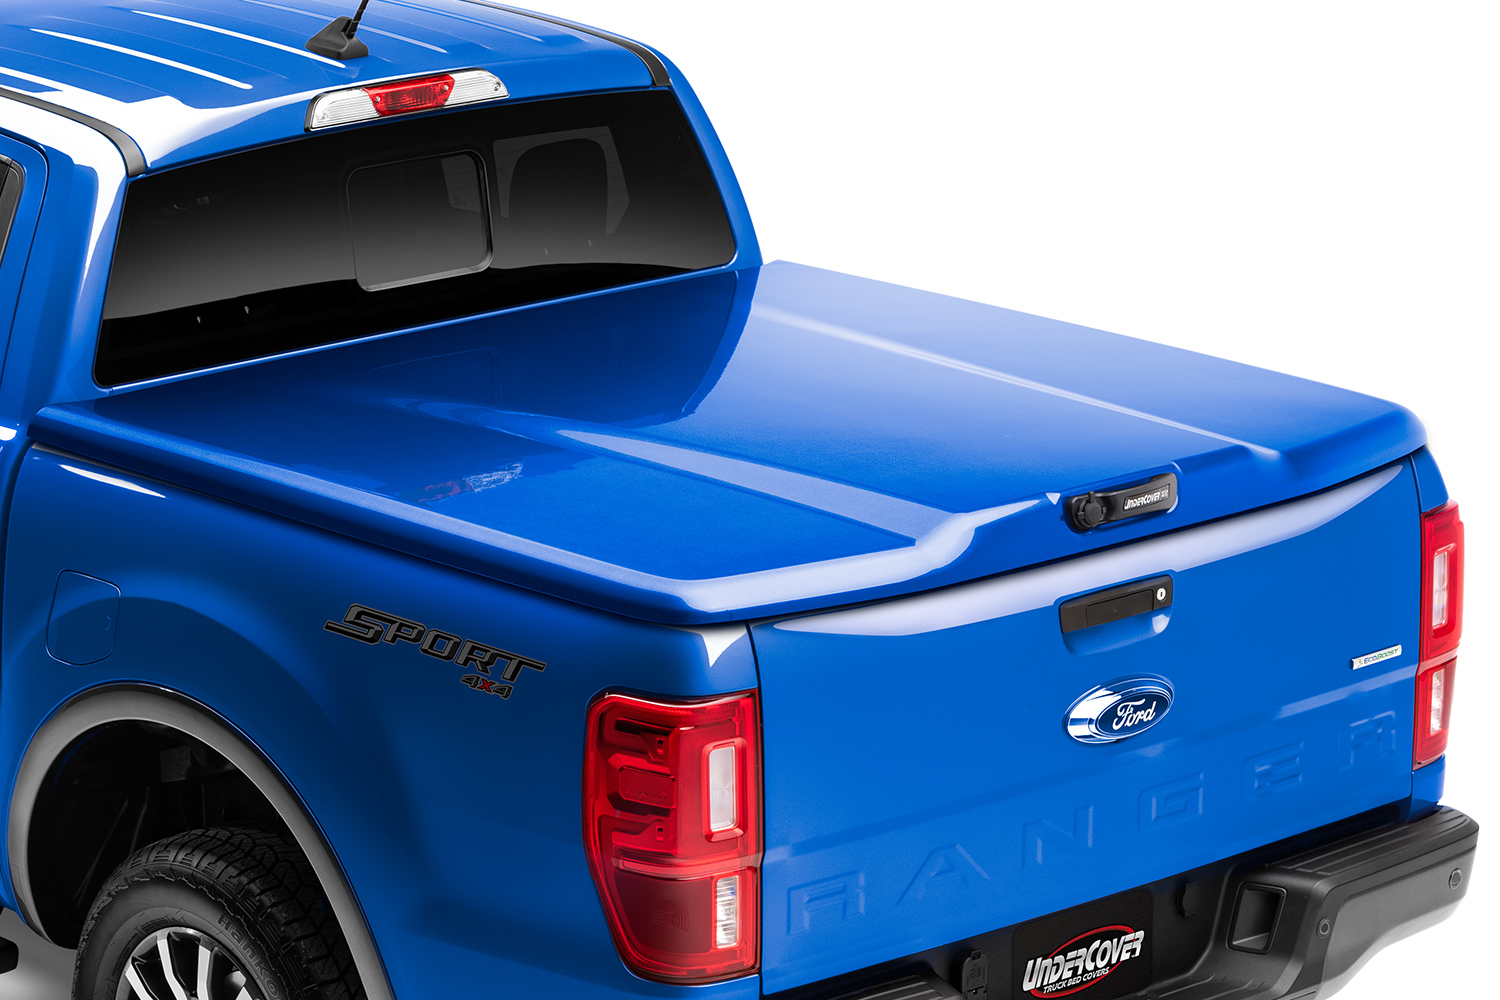 Undercover Elite Lx Tonneau Cover Read Reviews Free Shipping